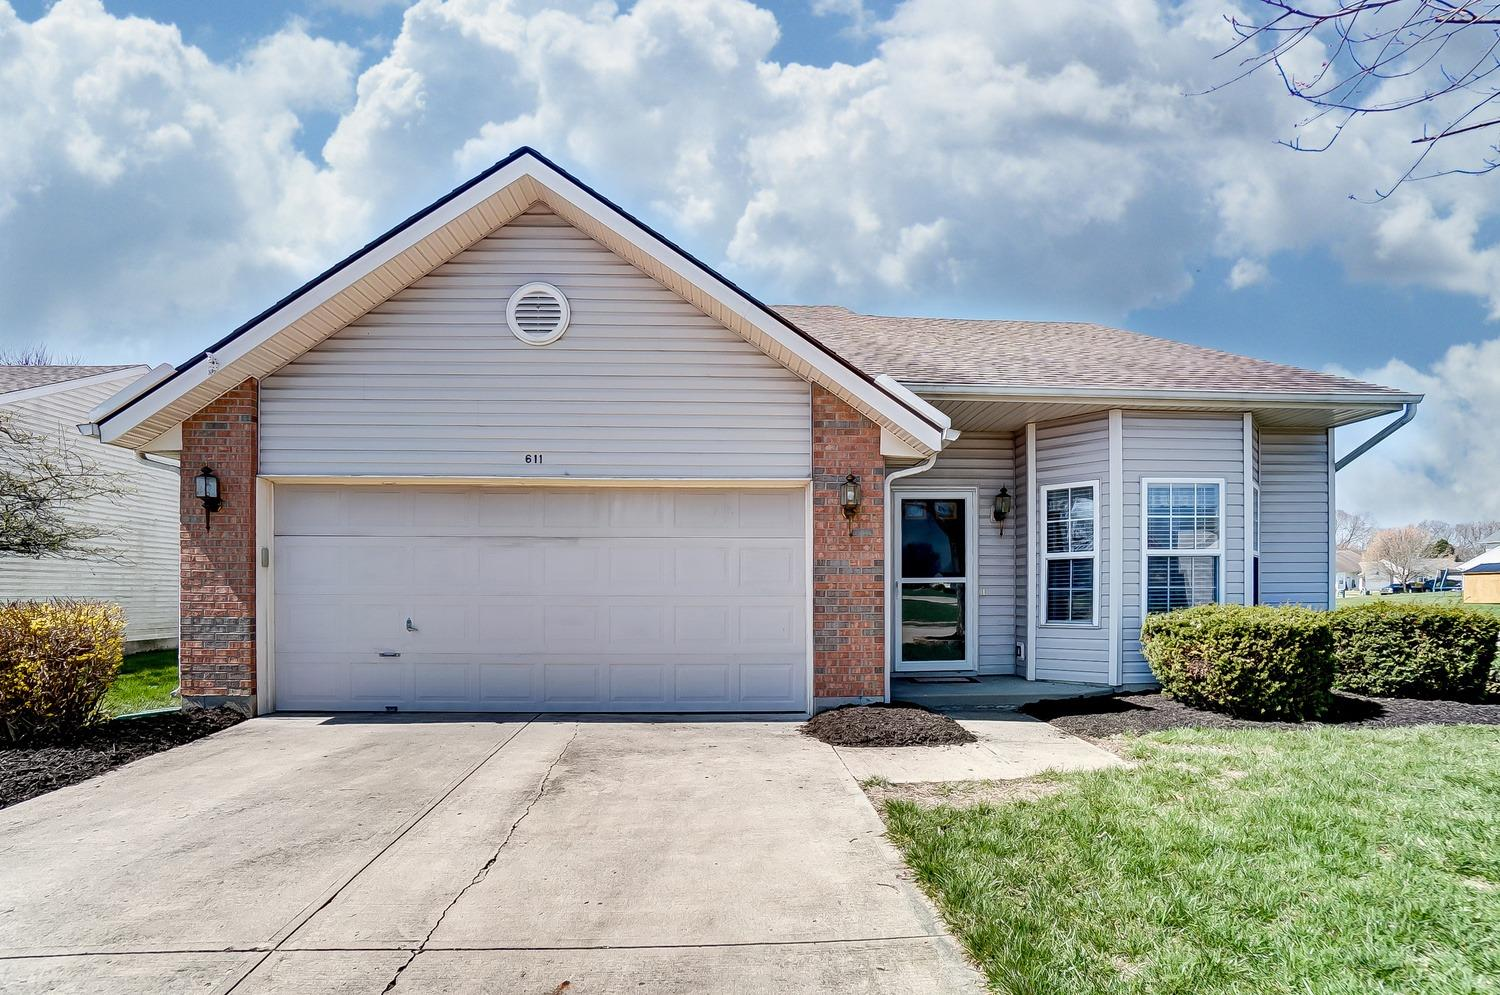 Property for sale at 611 Willow Place, Trenton,  Ohio 45067